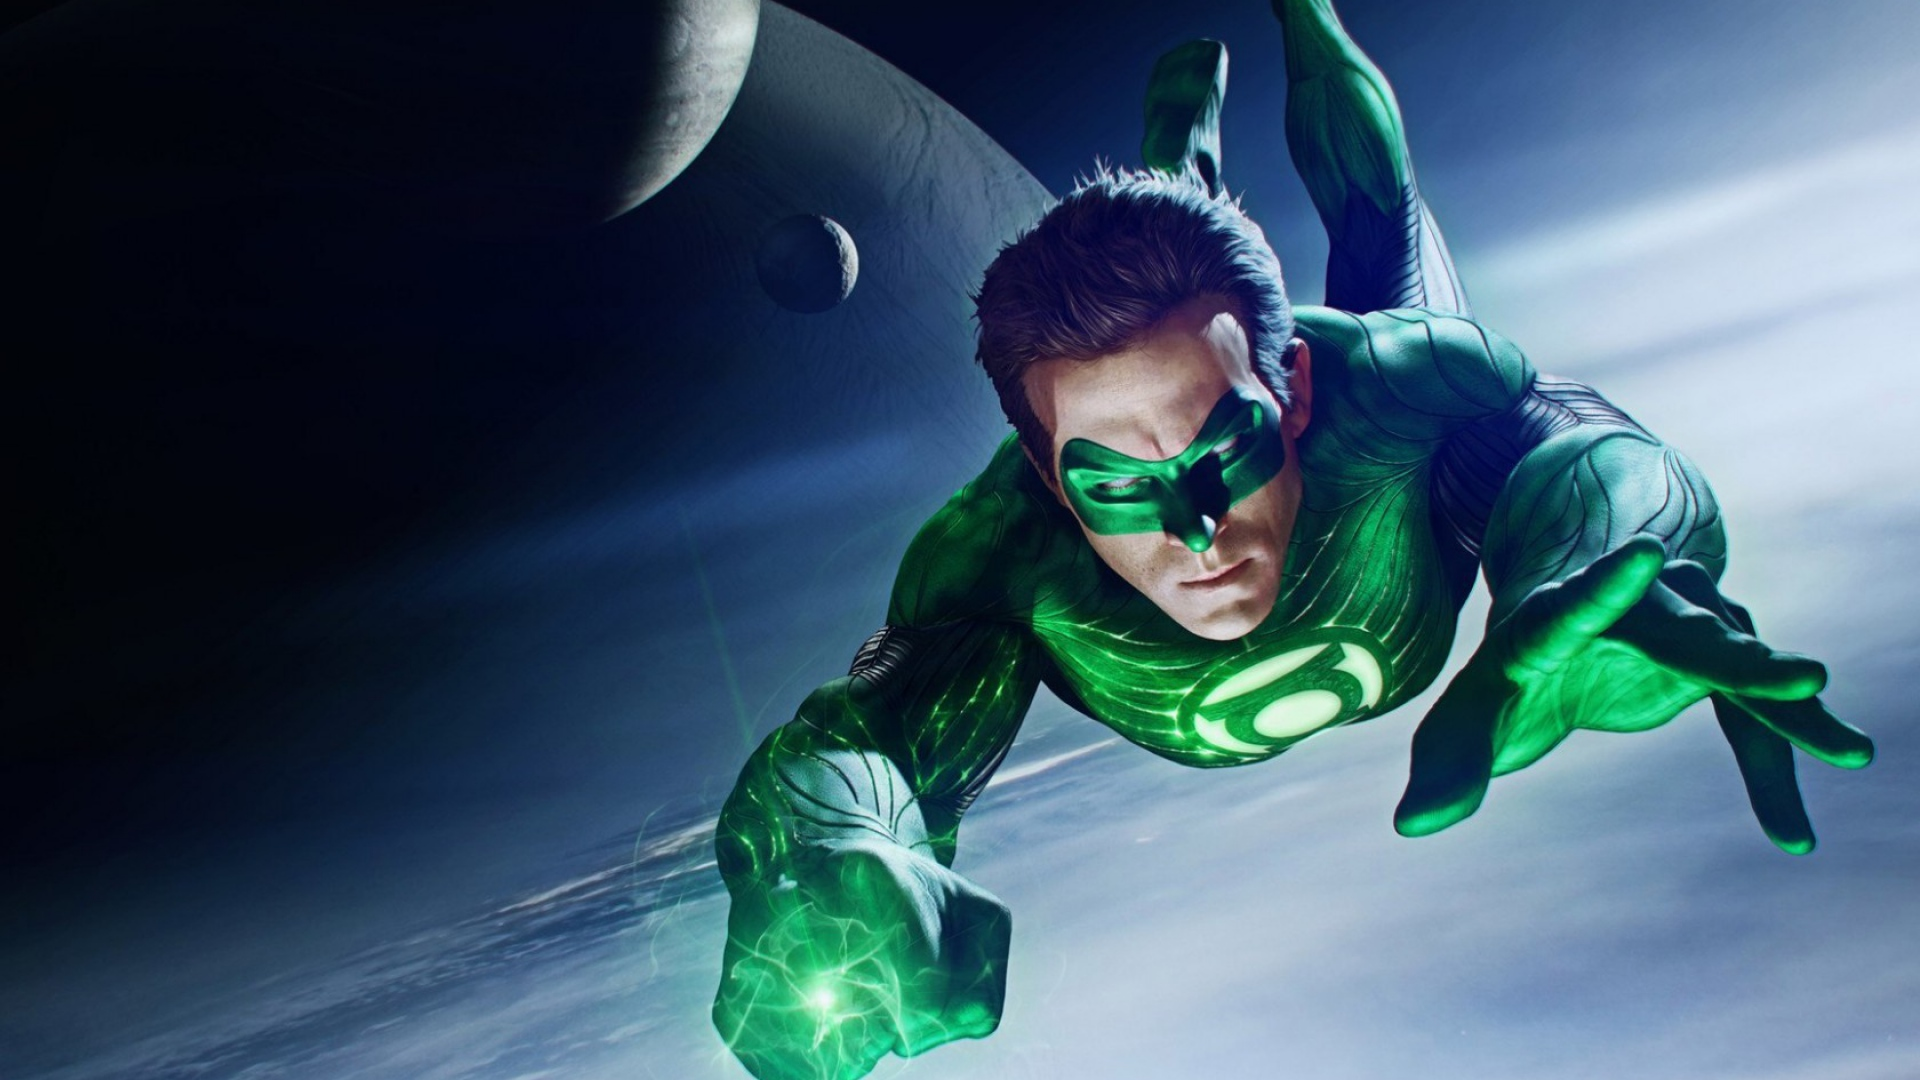 Green Lantern HD Movies 4k Wallpapers Images Backgrounds Photos